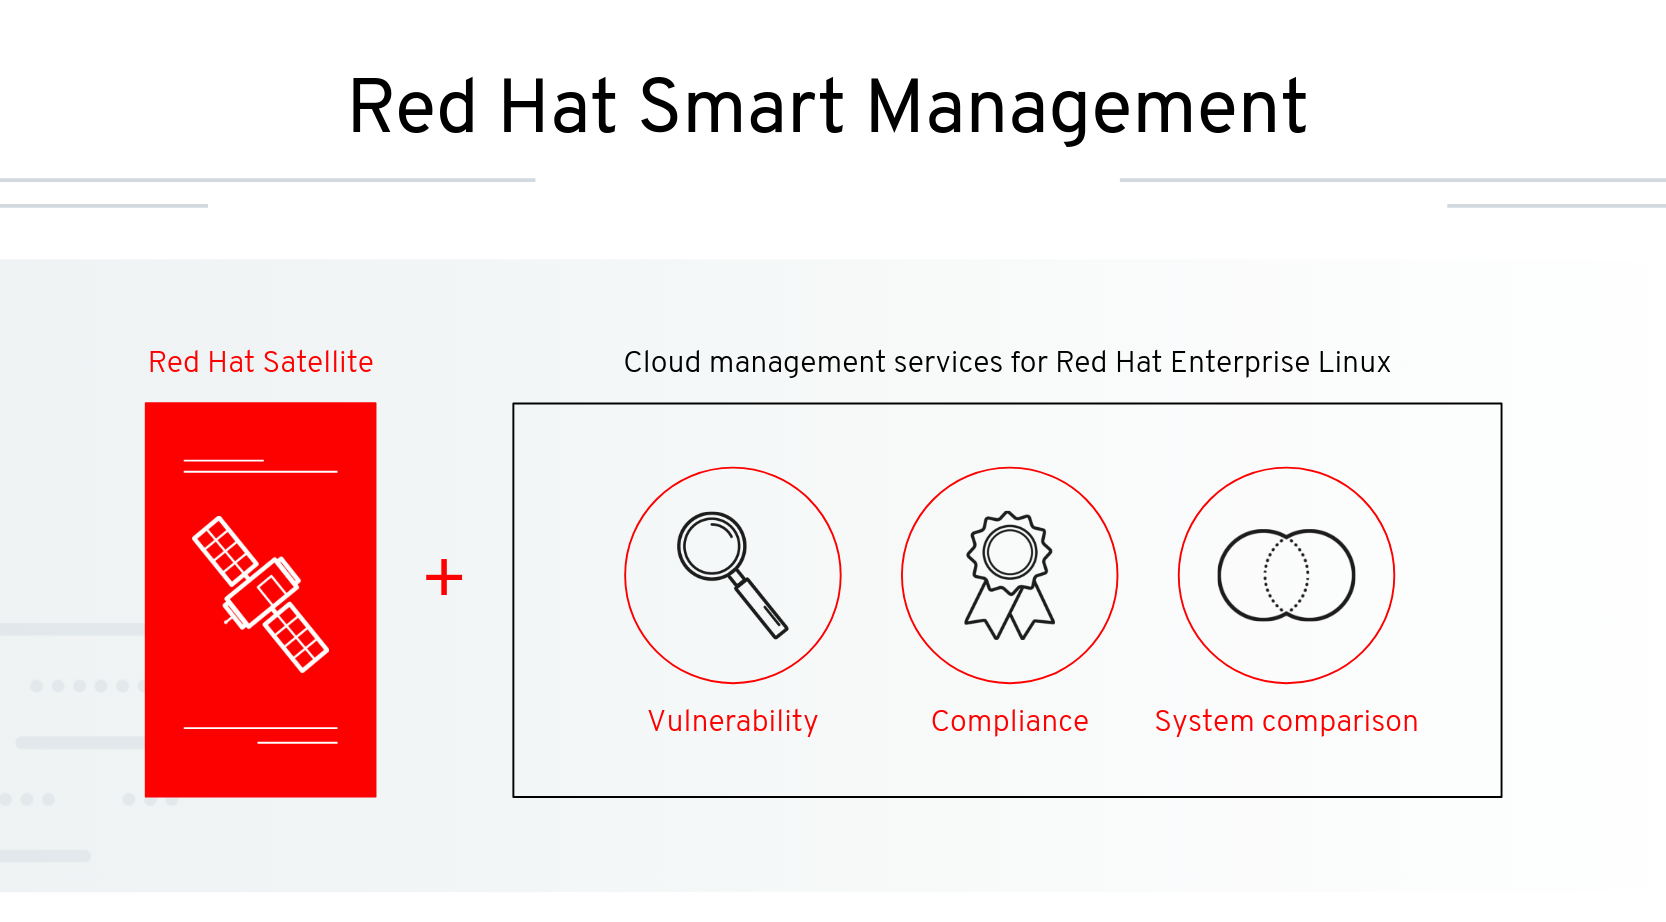 Red Hat Smart Management Illustration